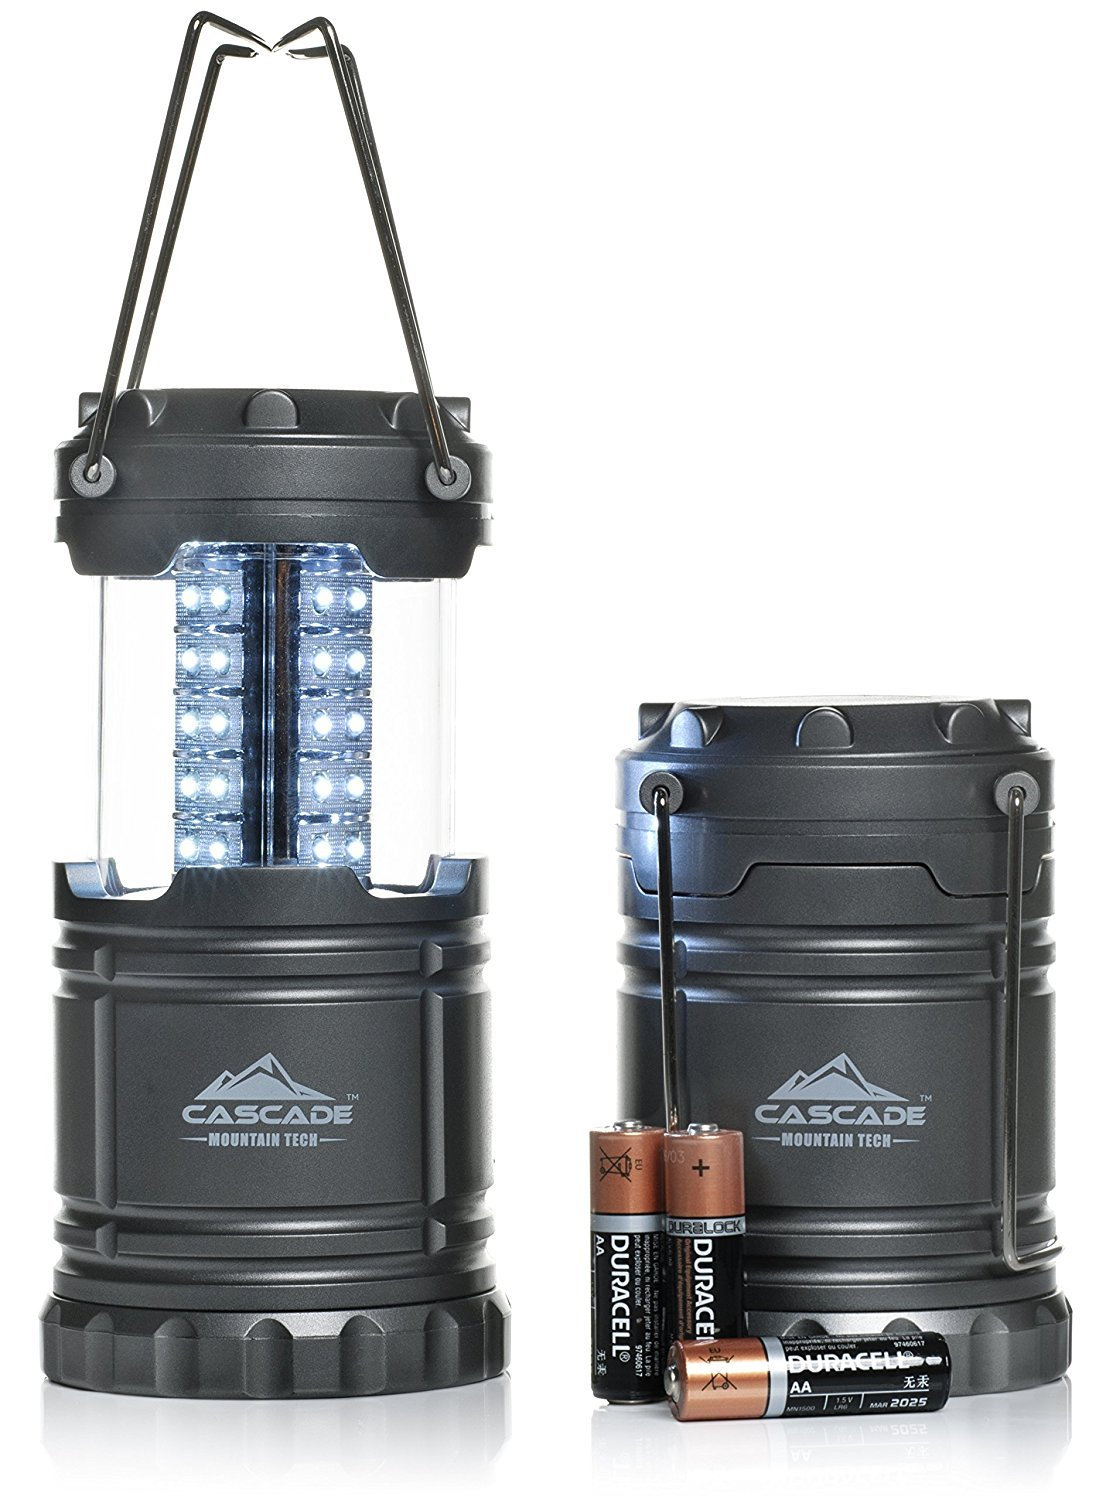 Pop up LED Lantern -2 PACK- Perfect Lighting for Camping, BBQ's and Emergency Light